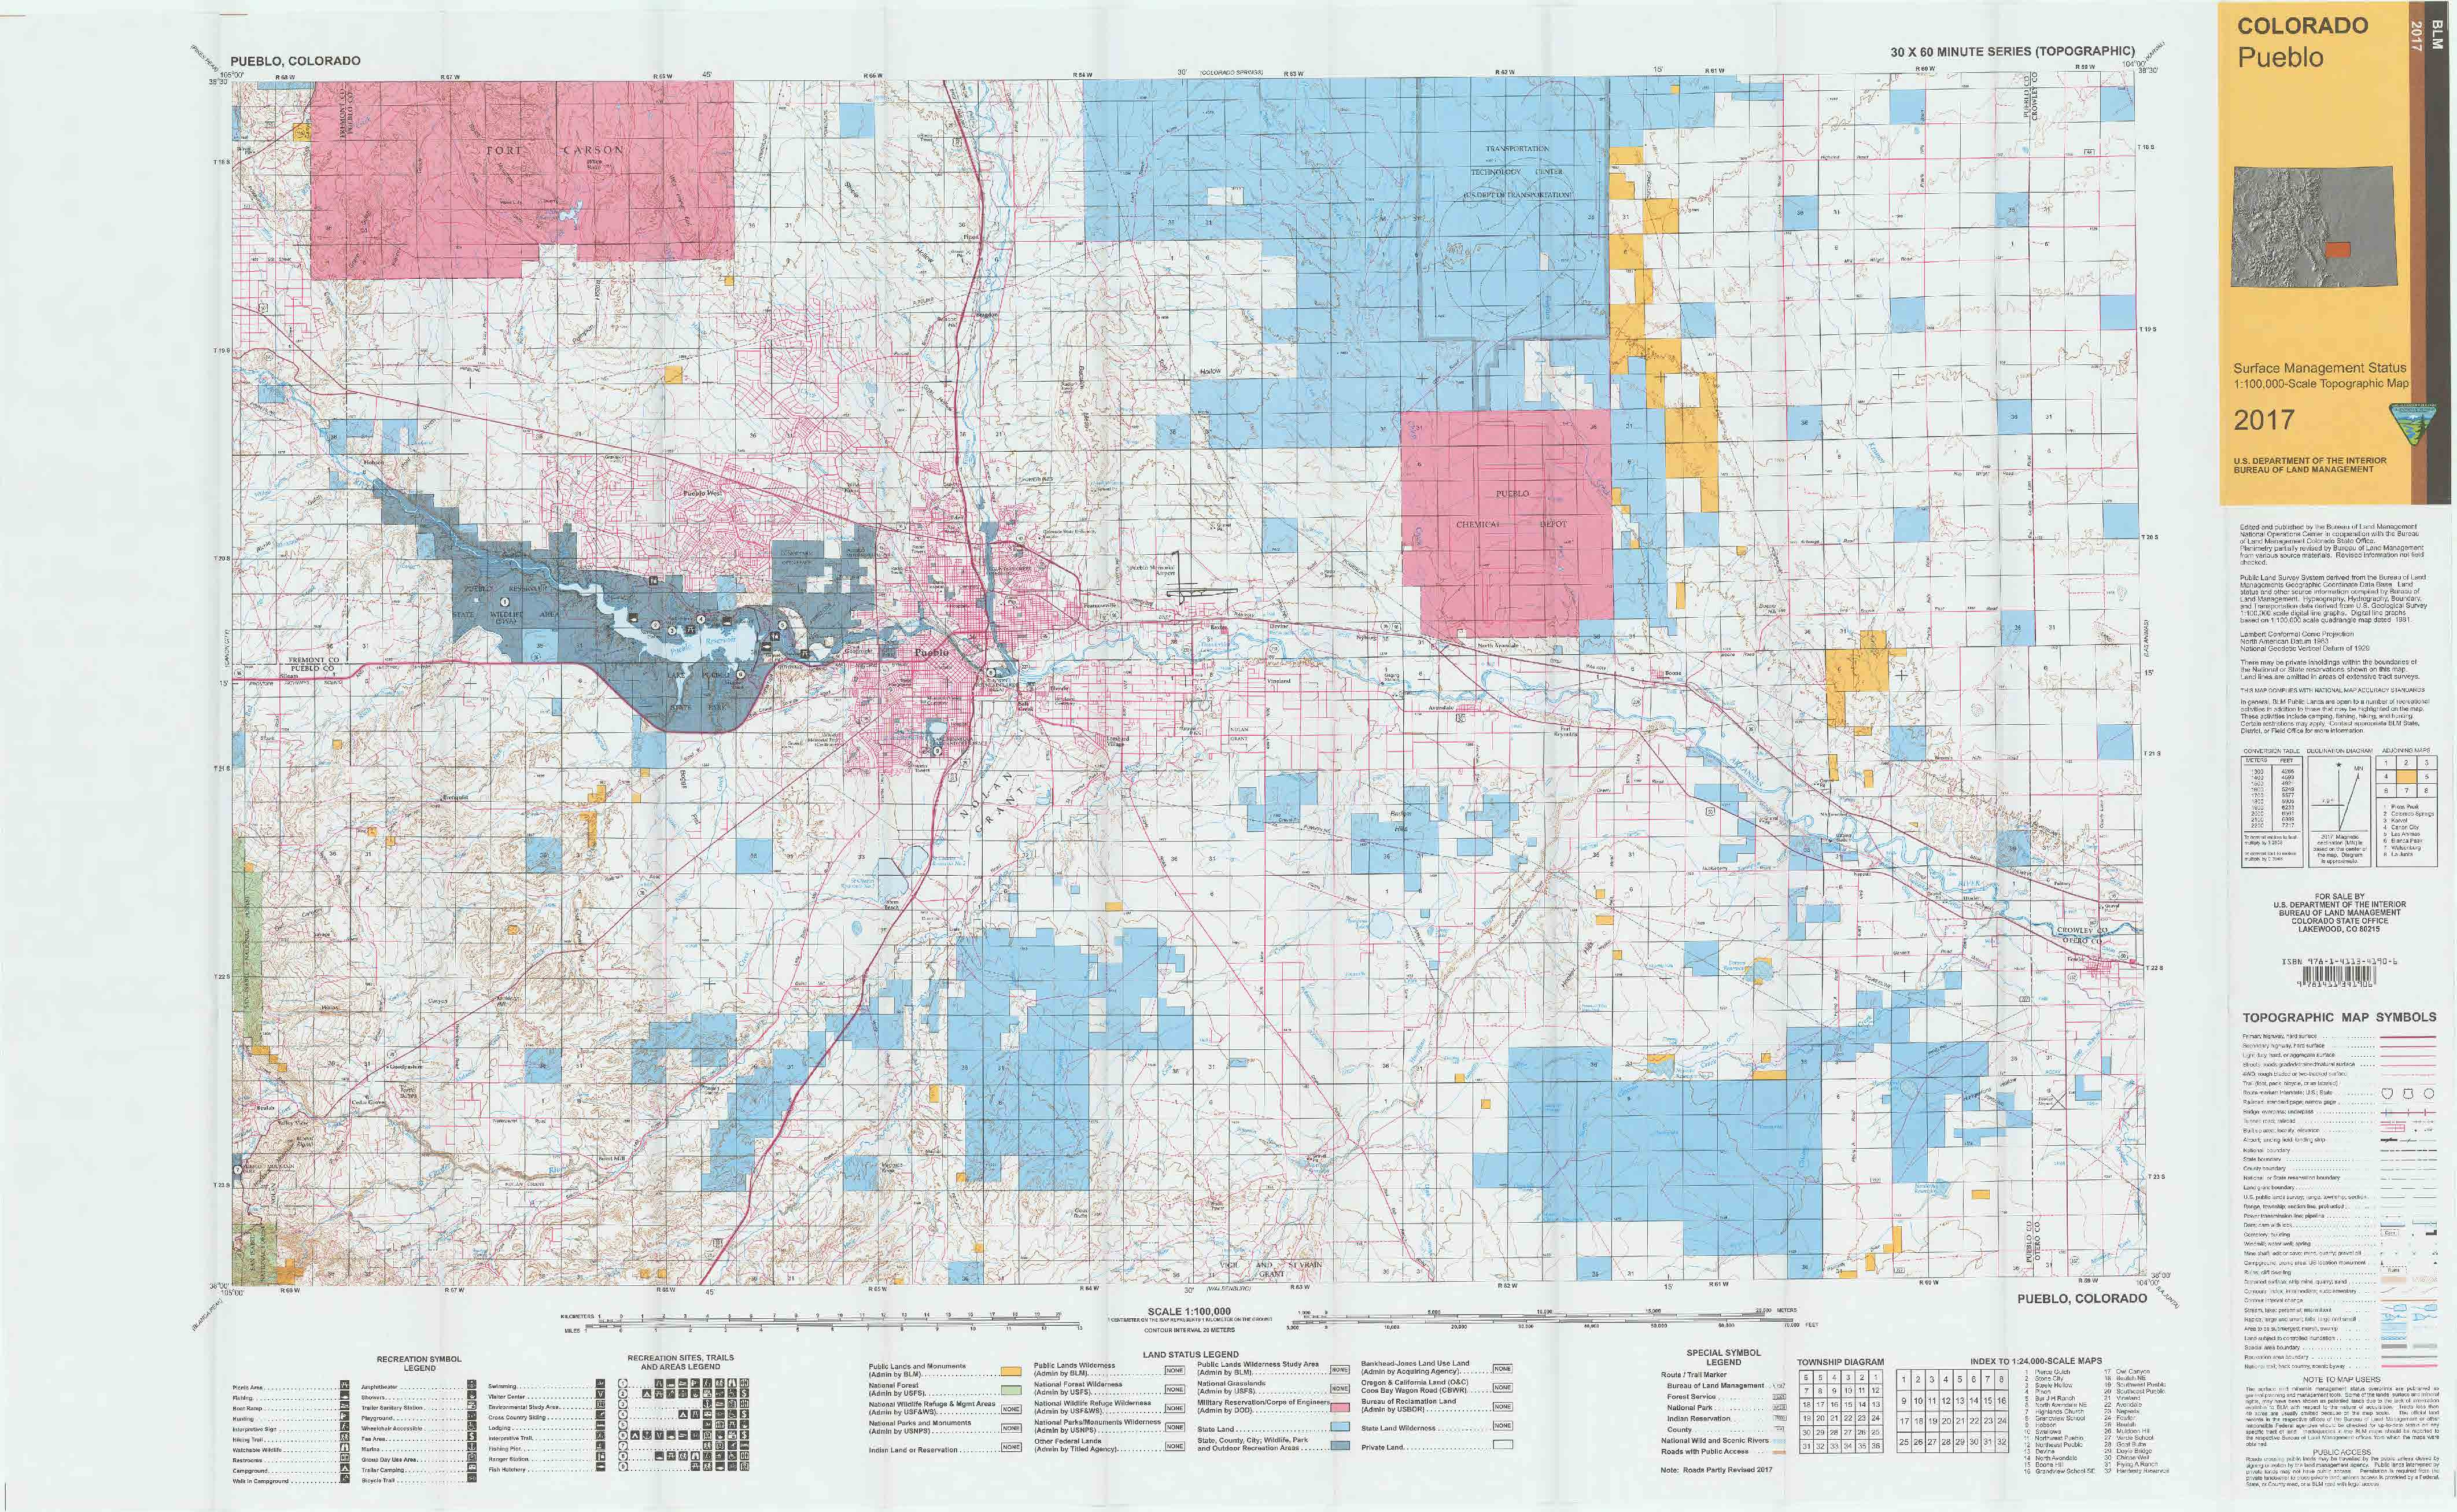 CO Surface Management Status Pueblo Map | Bureau of Land ...